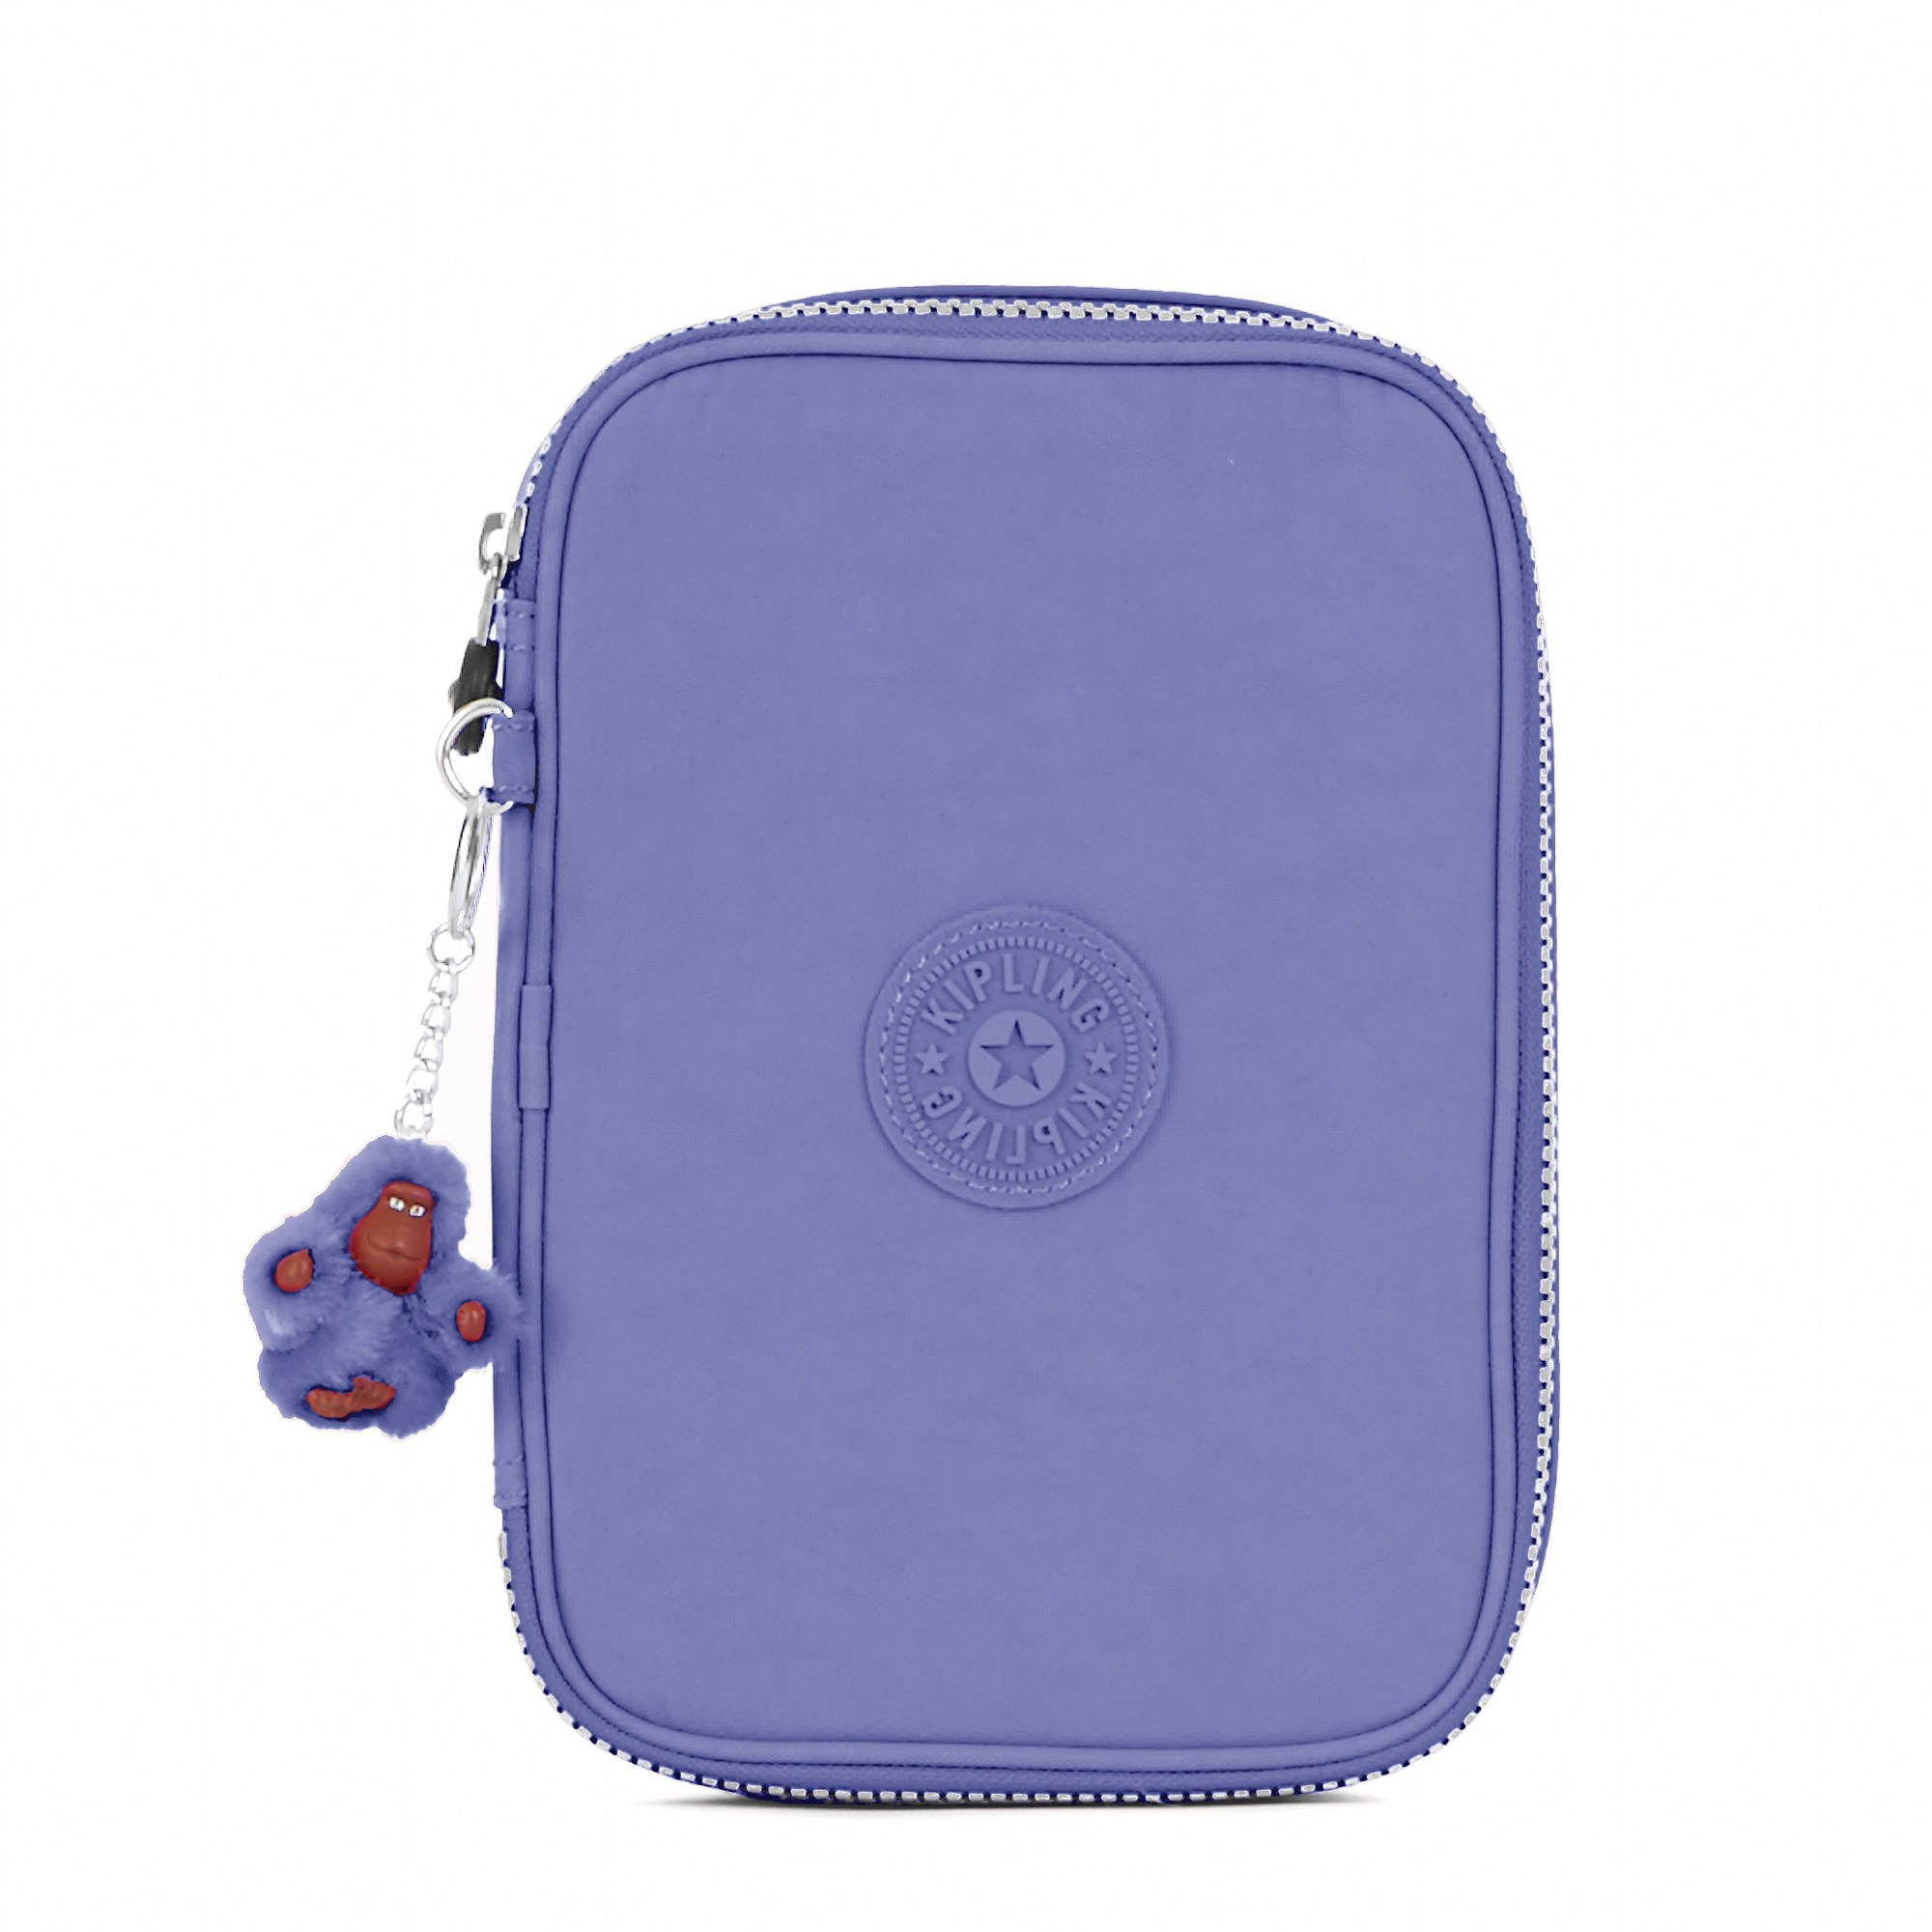 Kipling 100 Pens Bold Purple Case, BOLDPURPLE